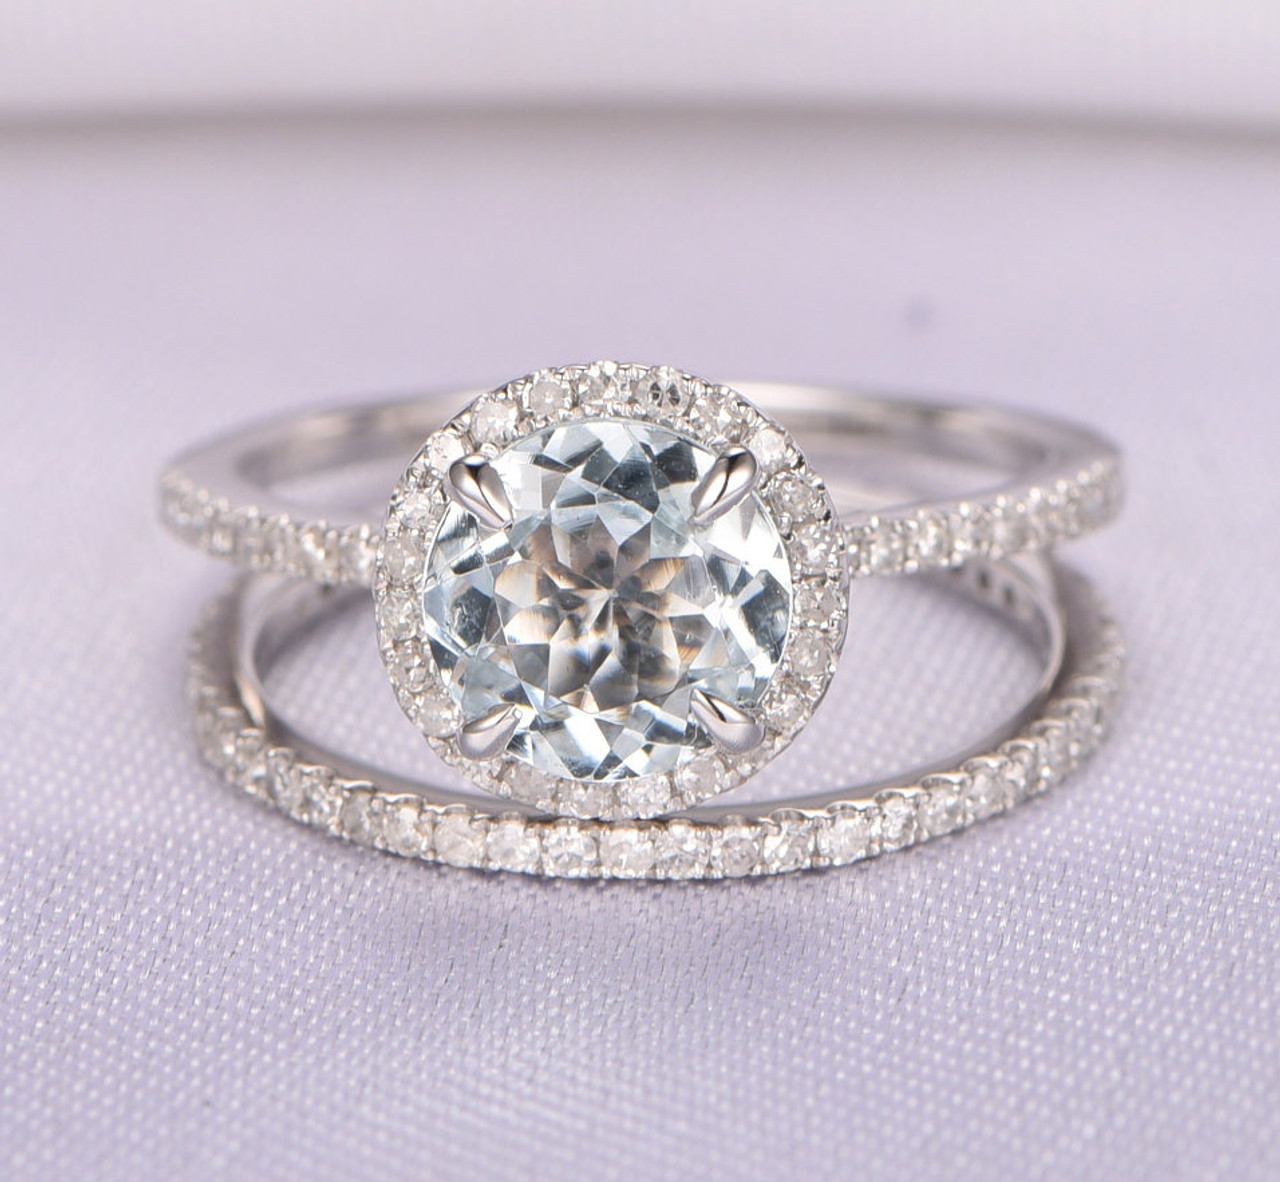 Aquamarine Engagement Ring Set,7mm Round Aquamarine Ring,14k White Gold,Eternity  Diamond